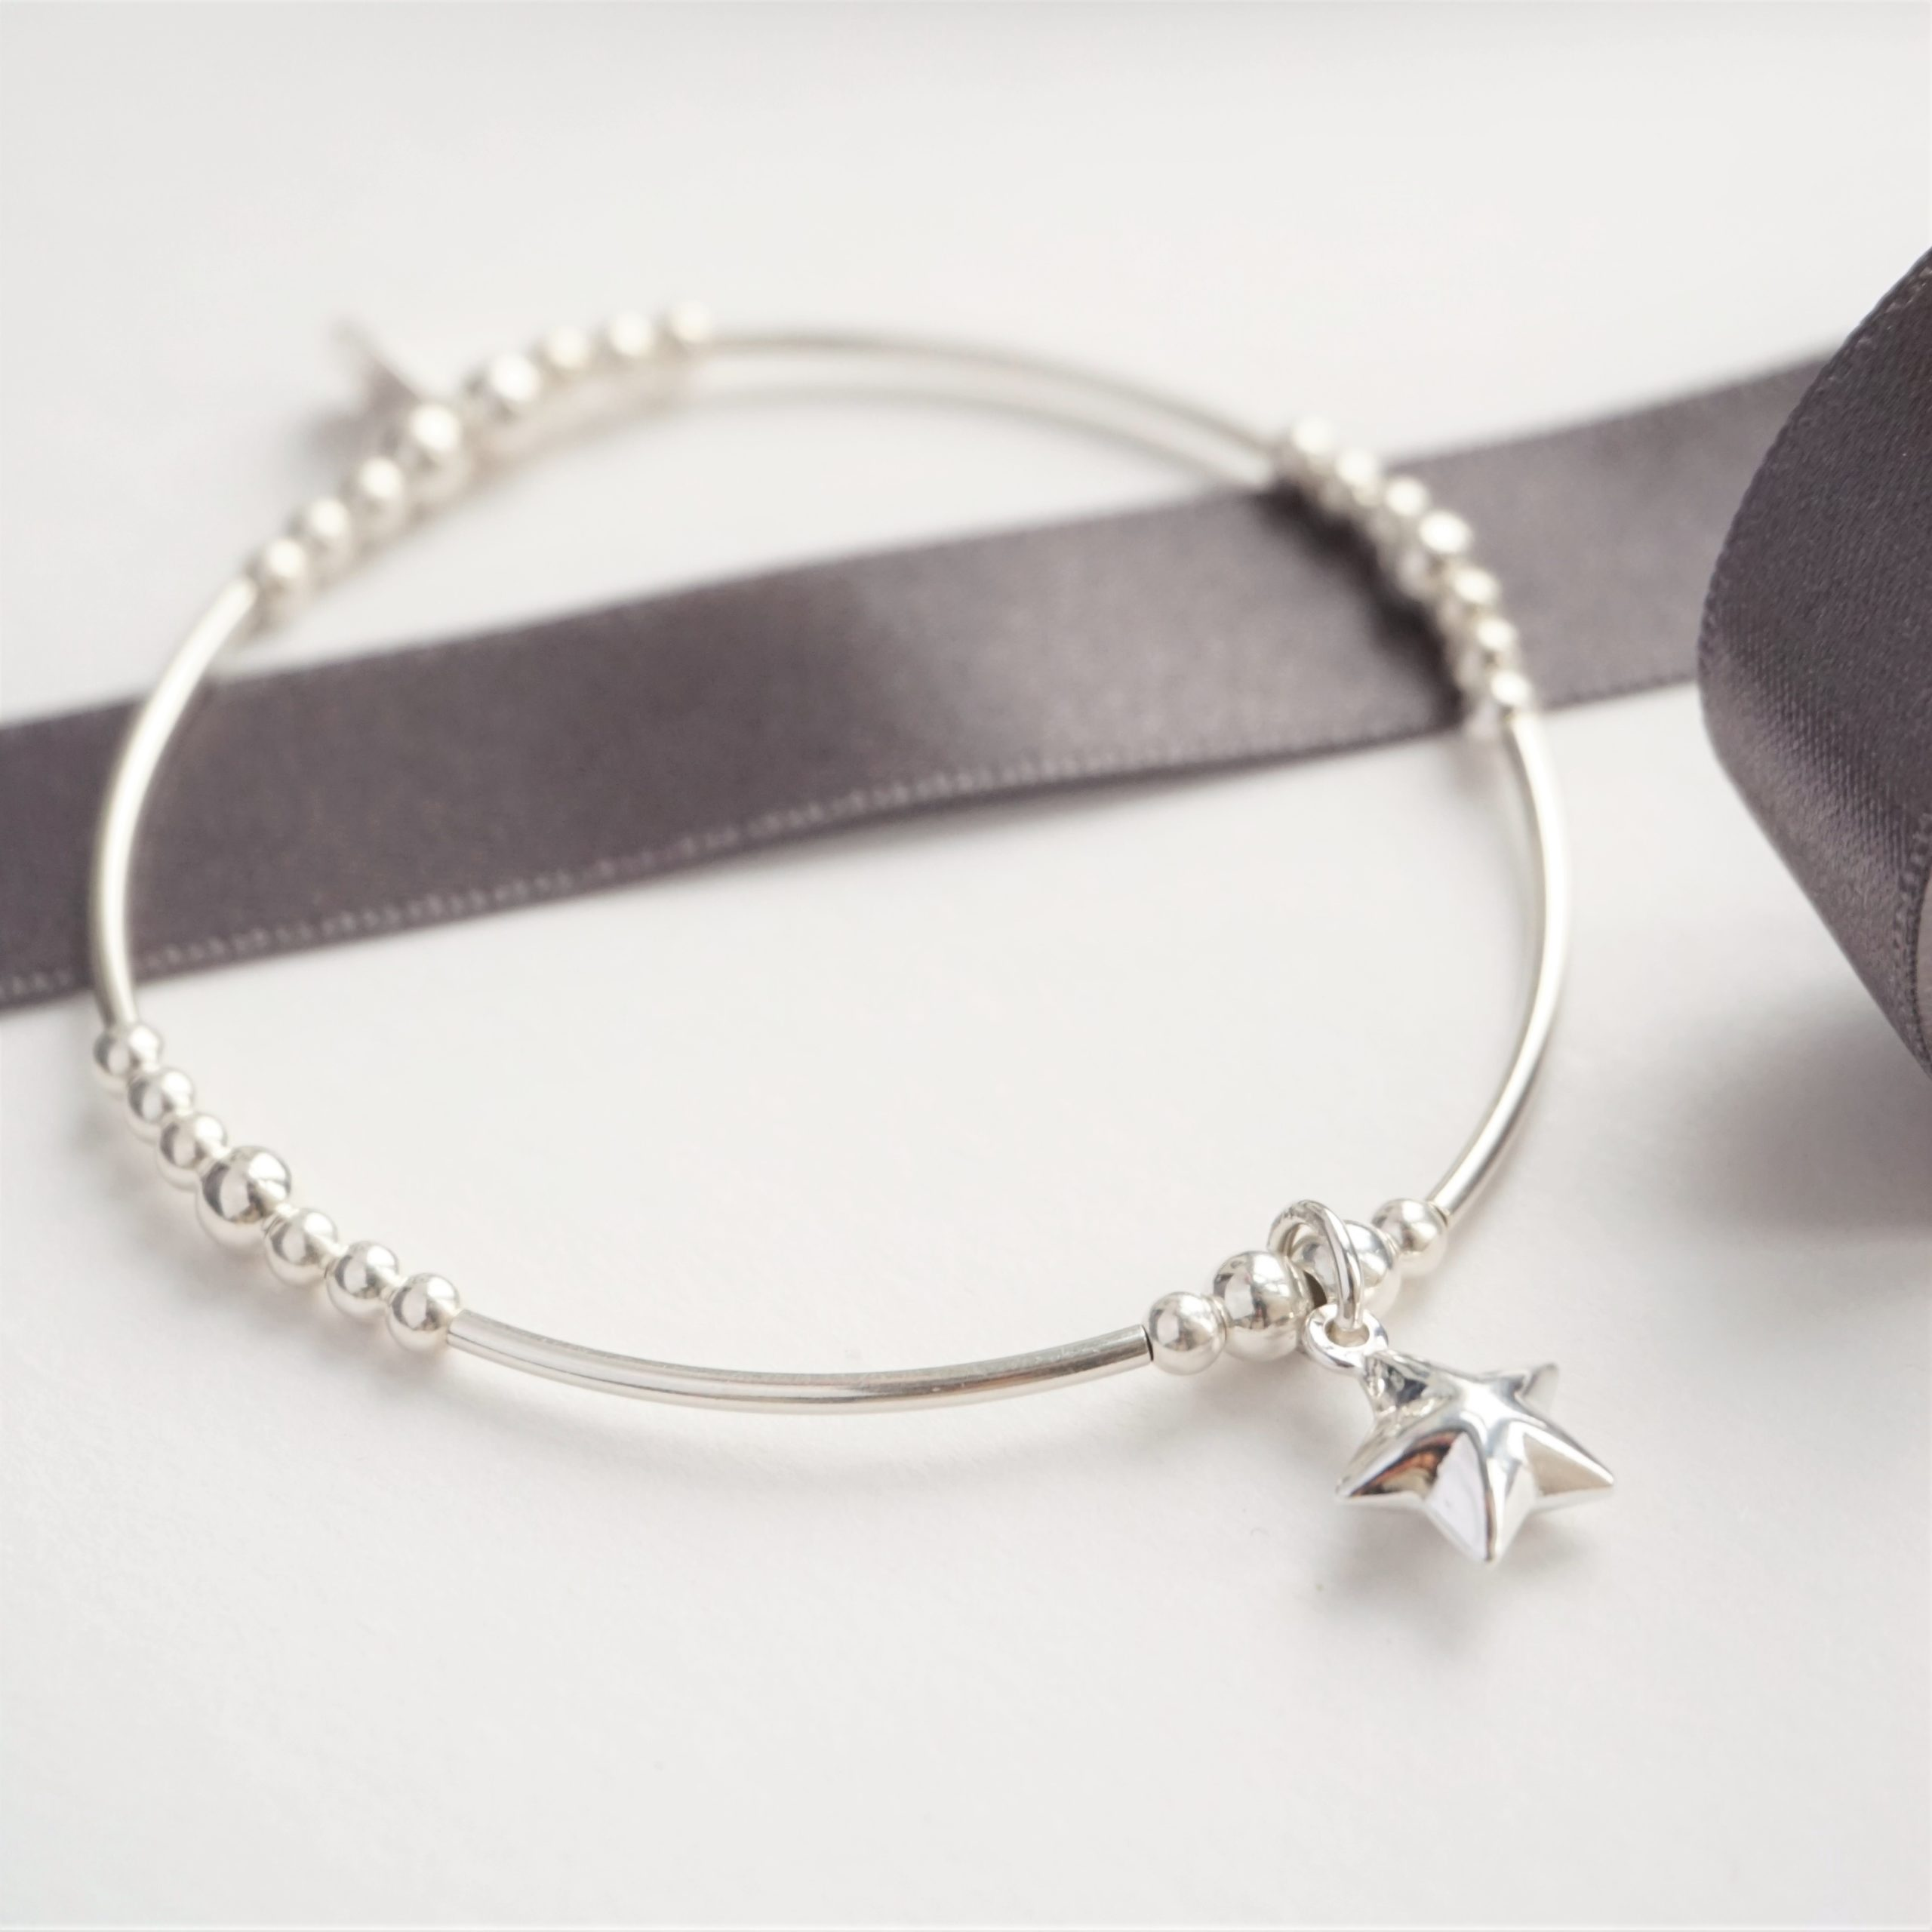 Sterling silver noodle bracelet with star charm